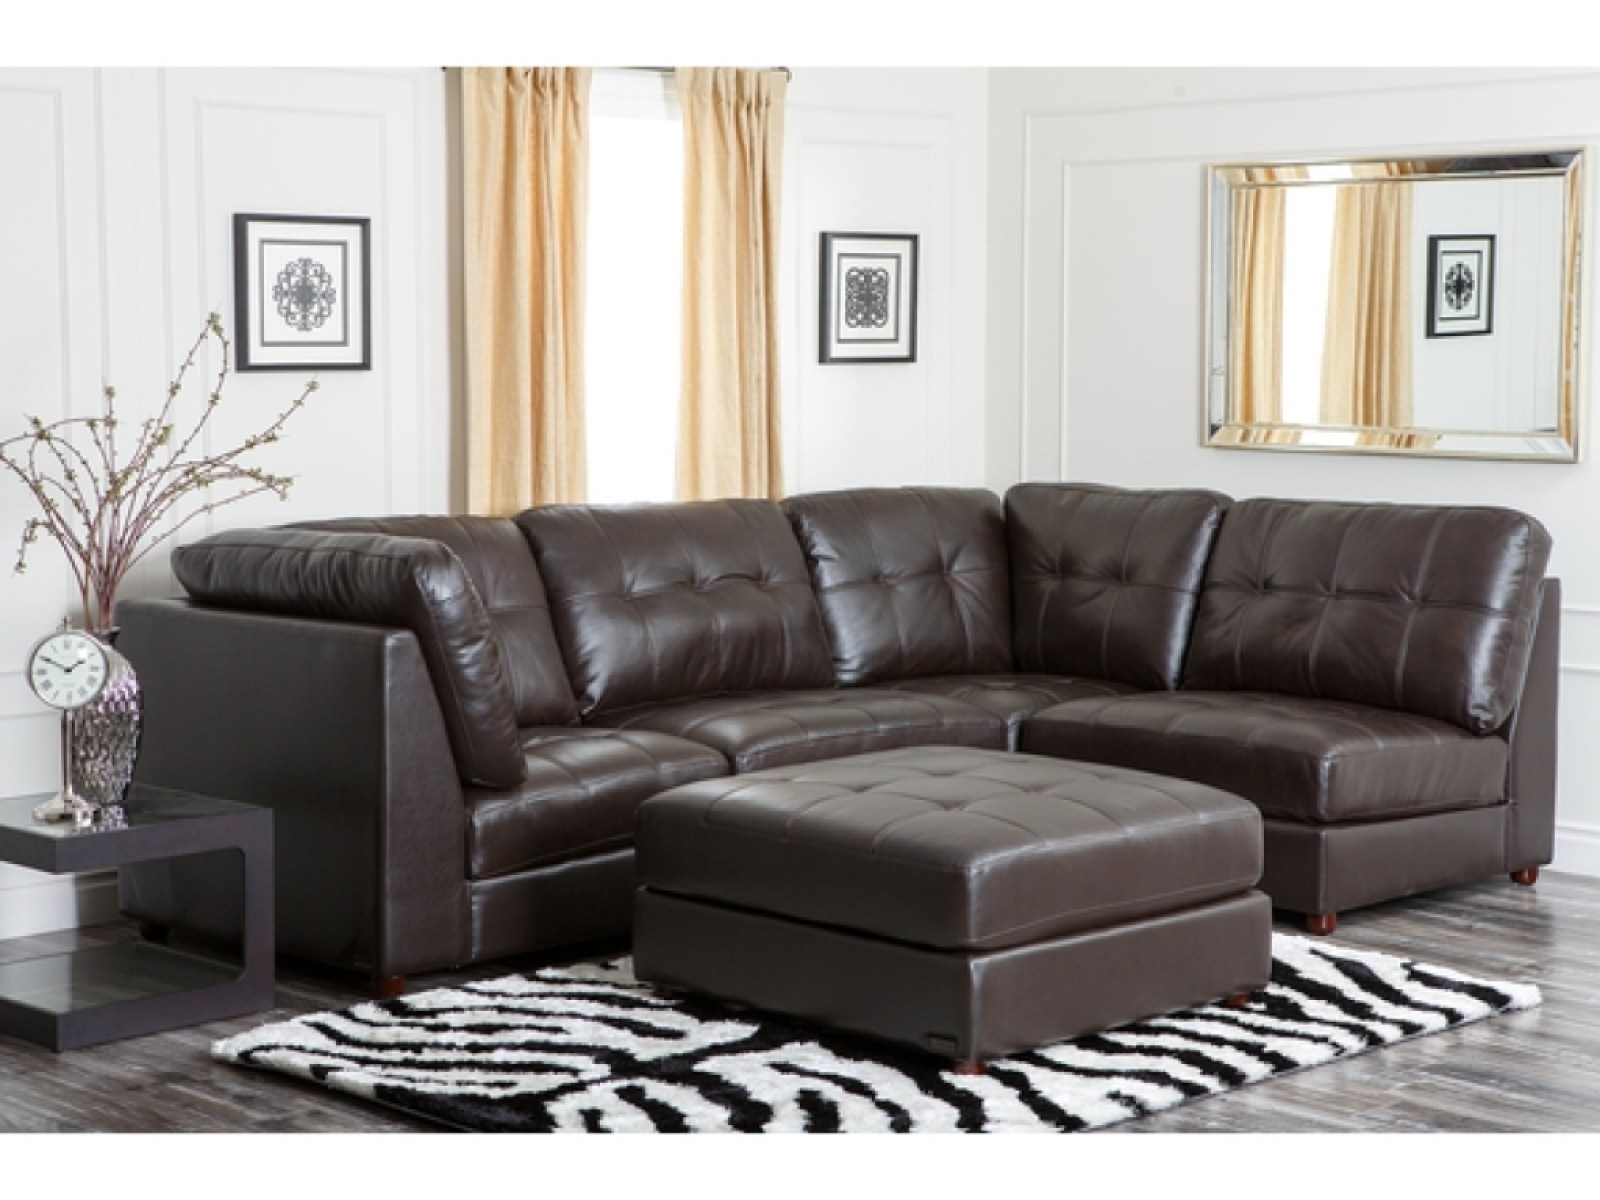 Sectional Sofas That Can Be Rearranged Throughout Trendy ▻ Sofa : 15 3058702 Poster P 1 A Modular Sofa That Can Rearrange (View 12 of 15)